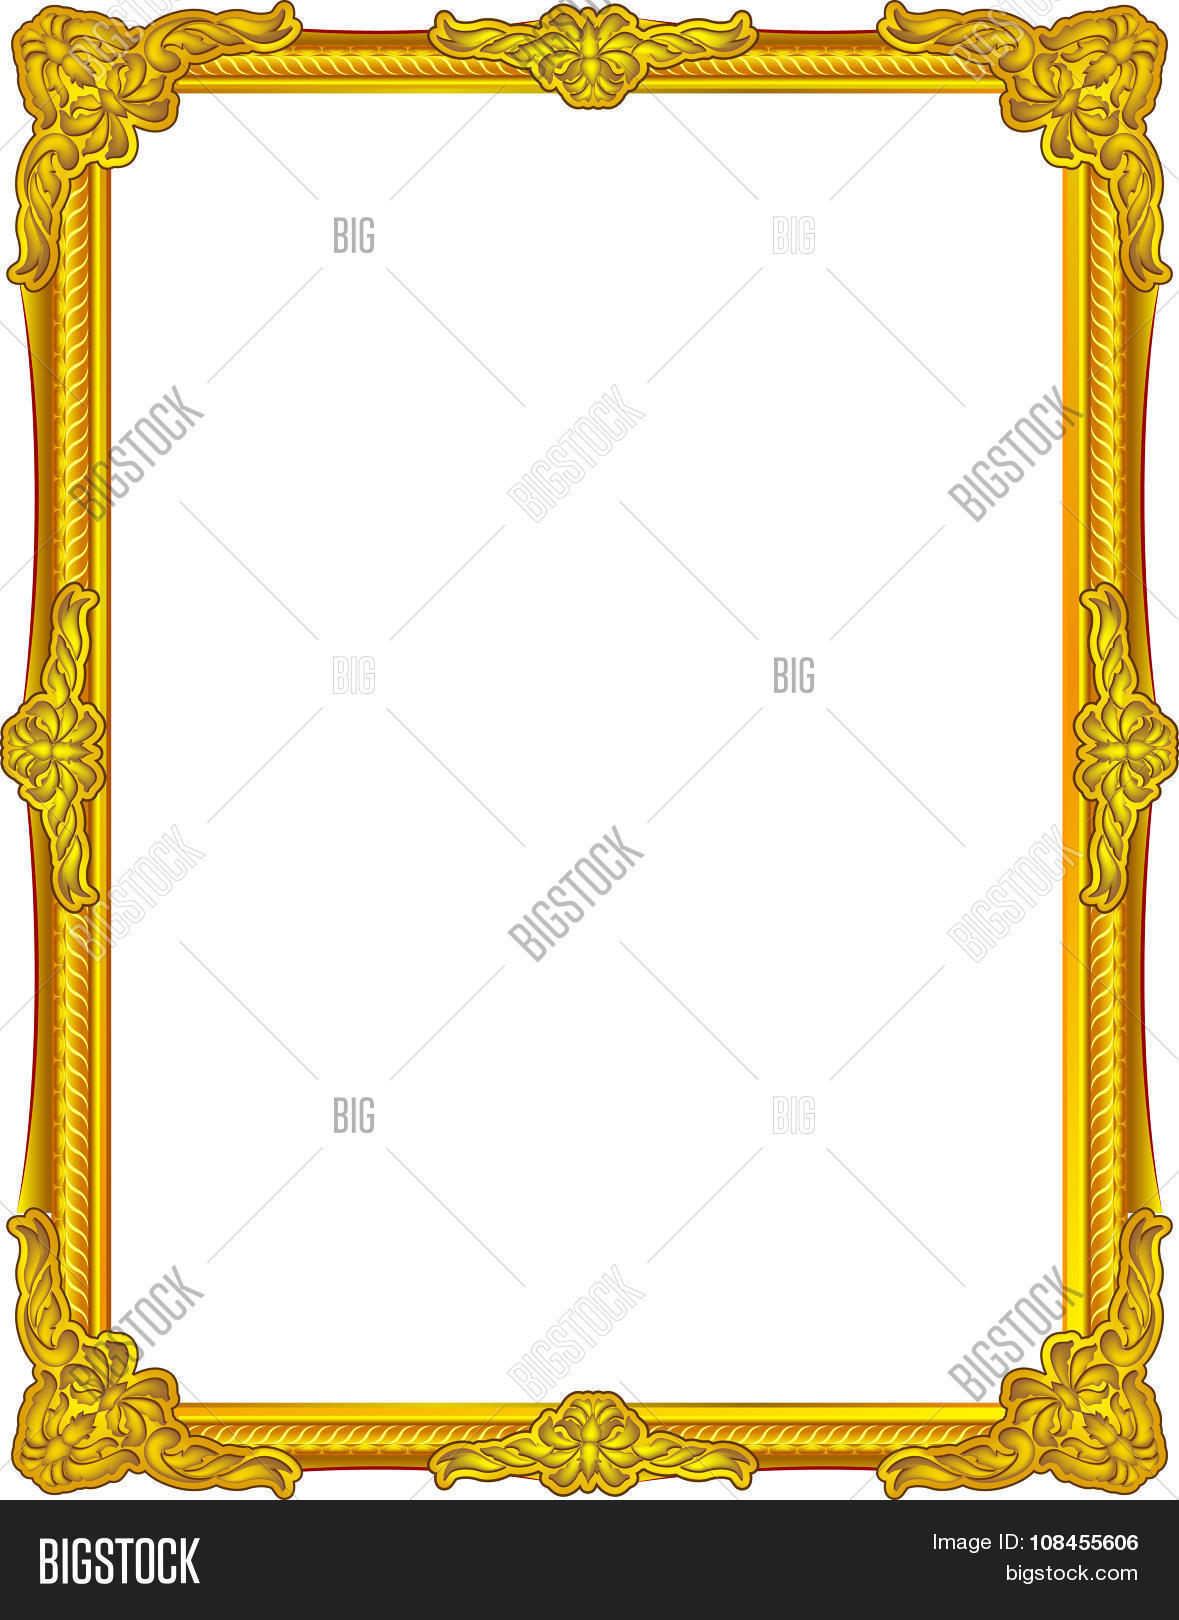 1291db8c240 gold frame louis picture vector abstract design gold frame color